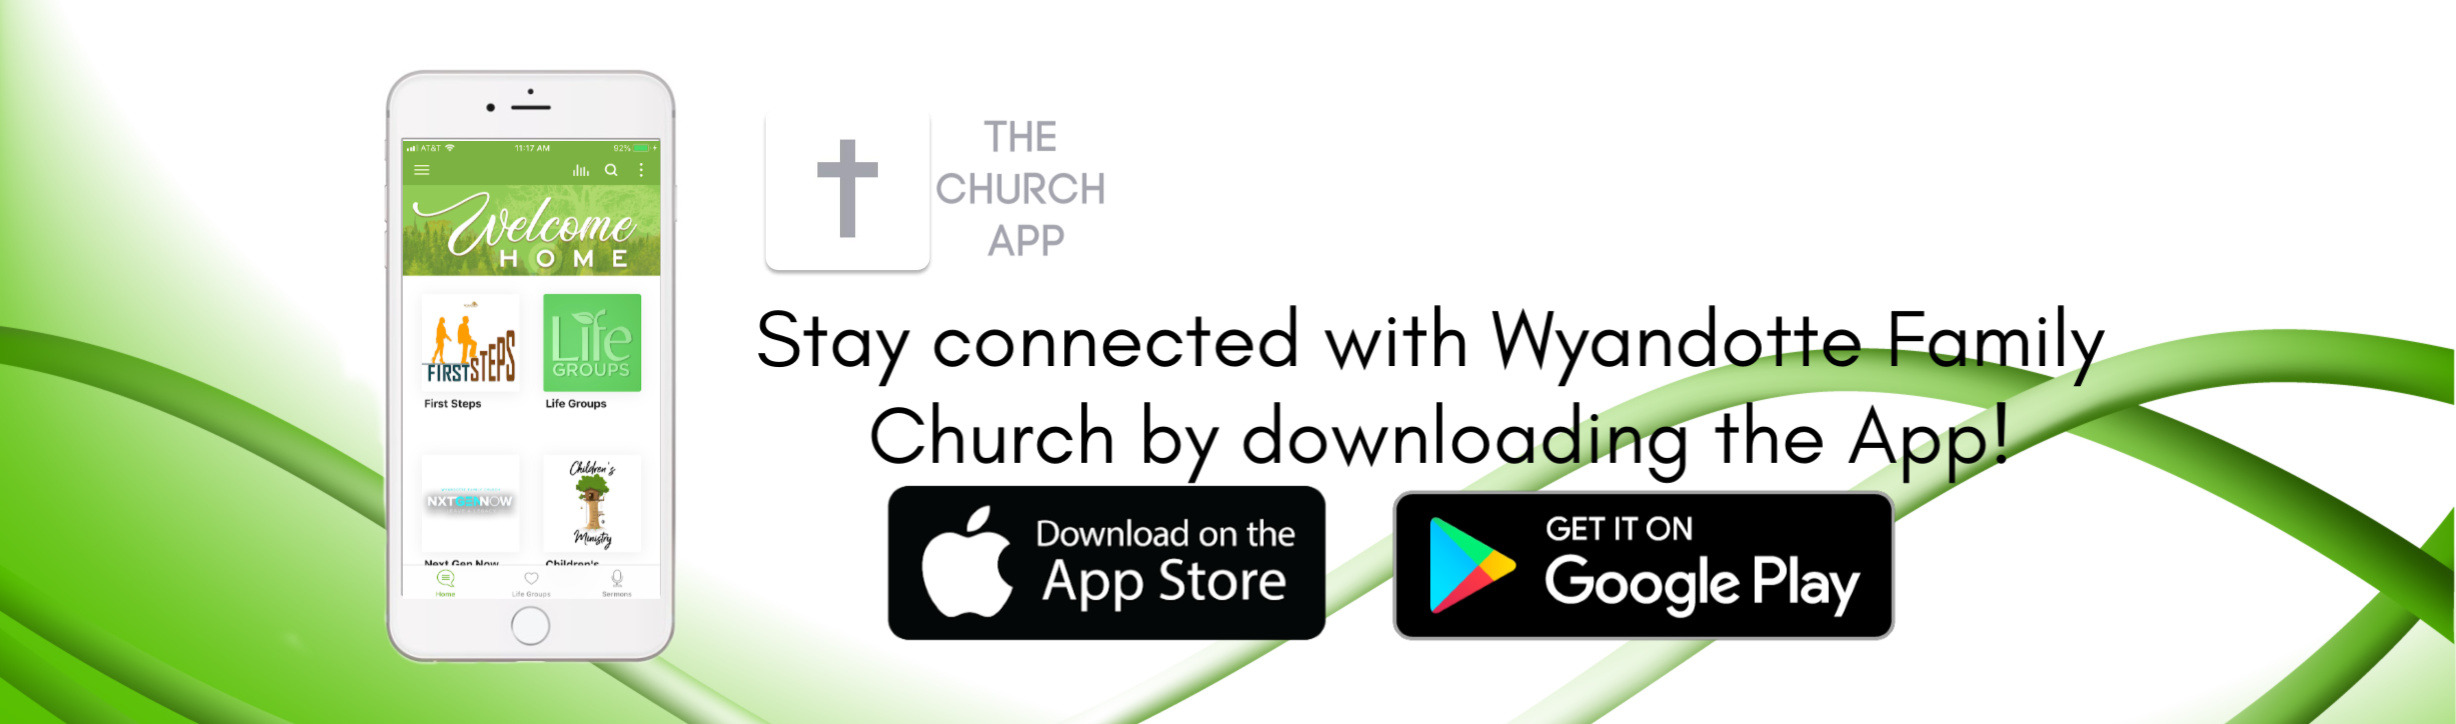 Church App Wide Banner.jpg